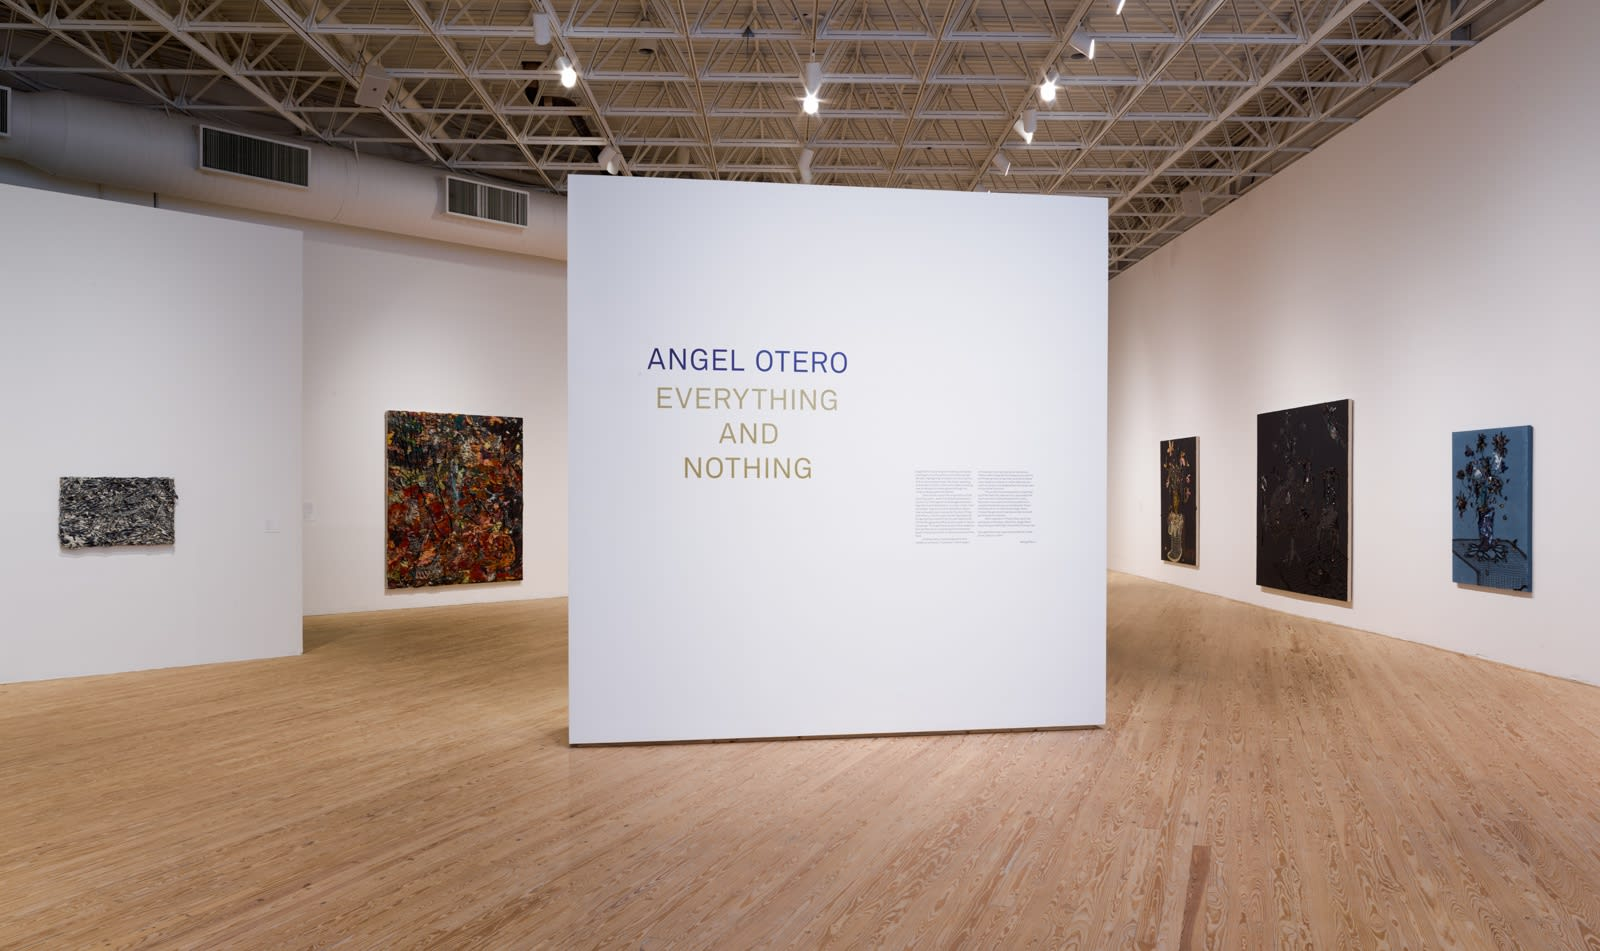 Angel Otero, Everything and Nothing